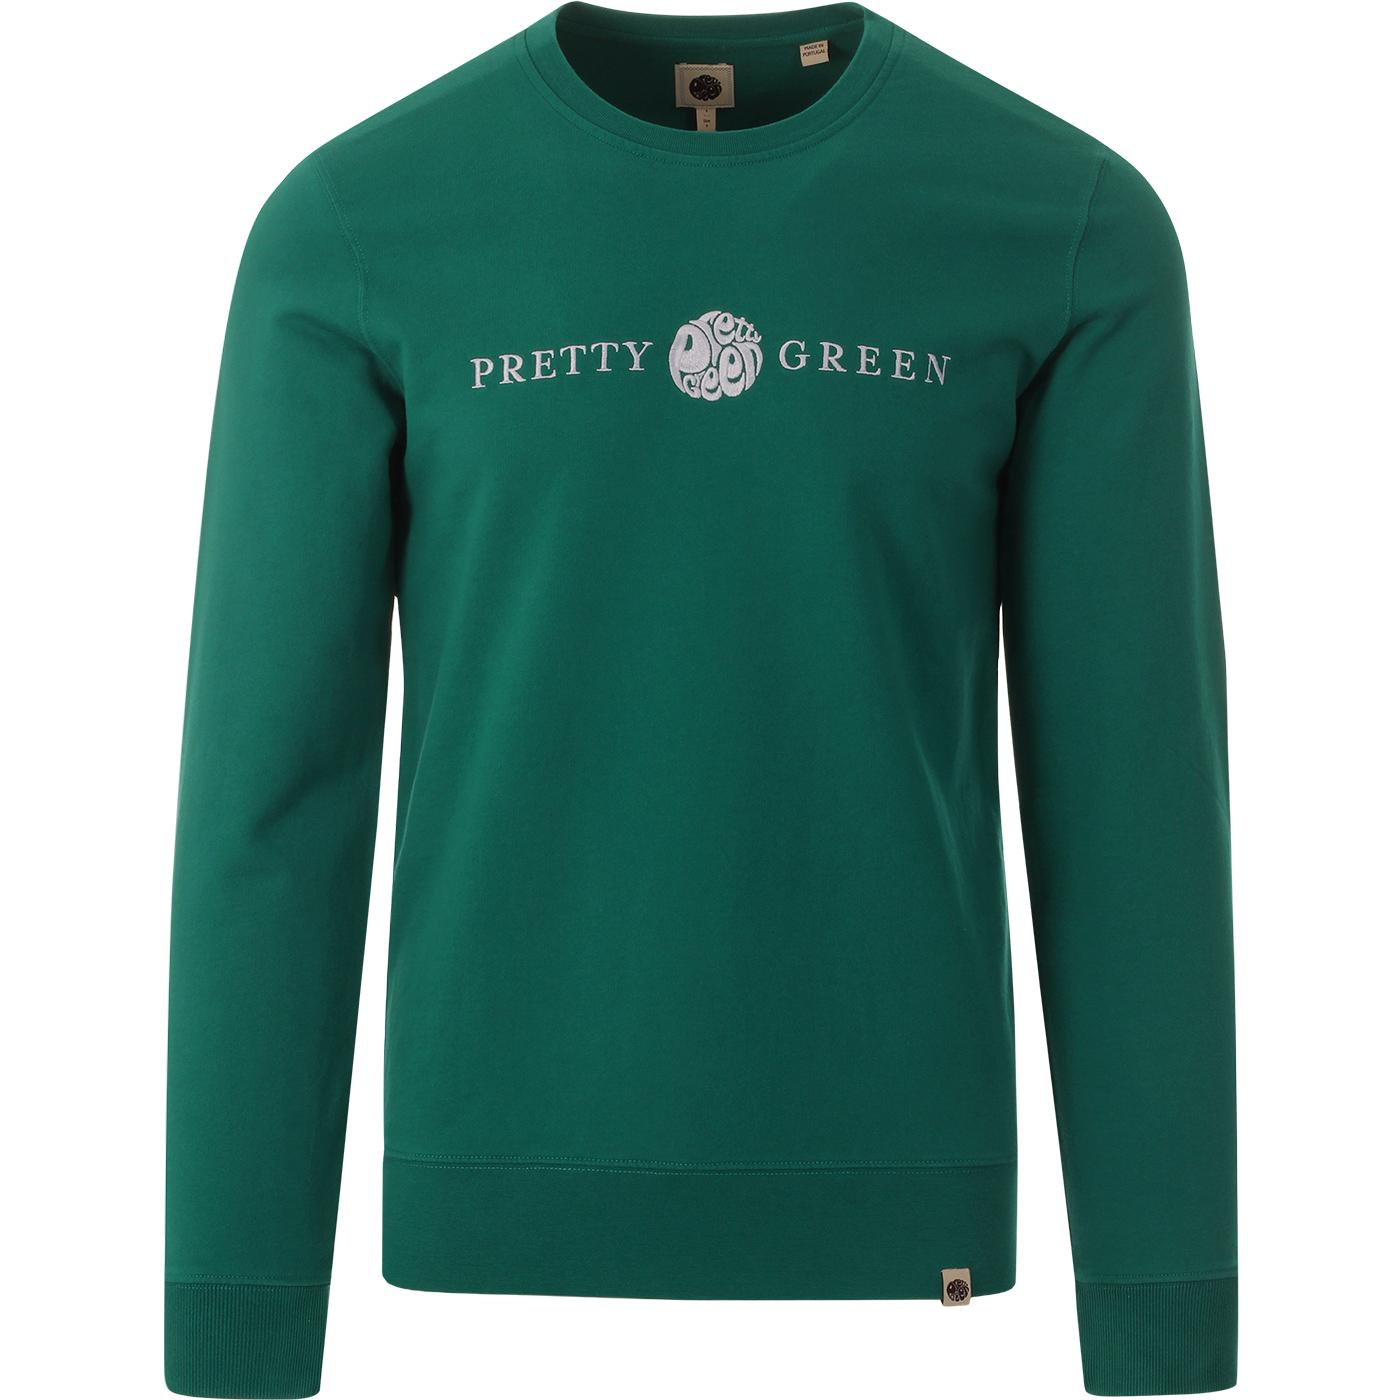 PRETTY GREEN Retro Embroidered Logo Sweatshirt (G)